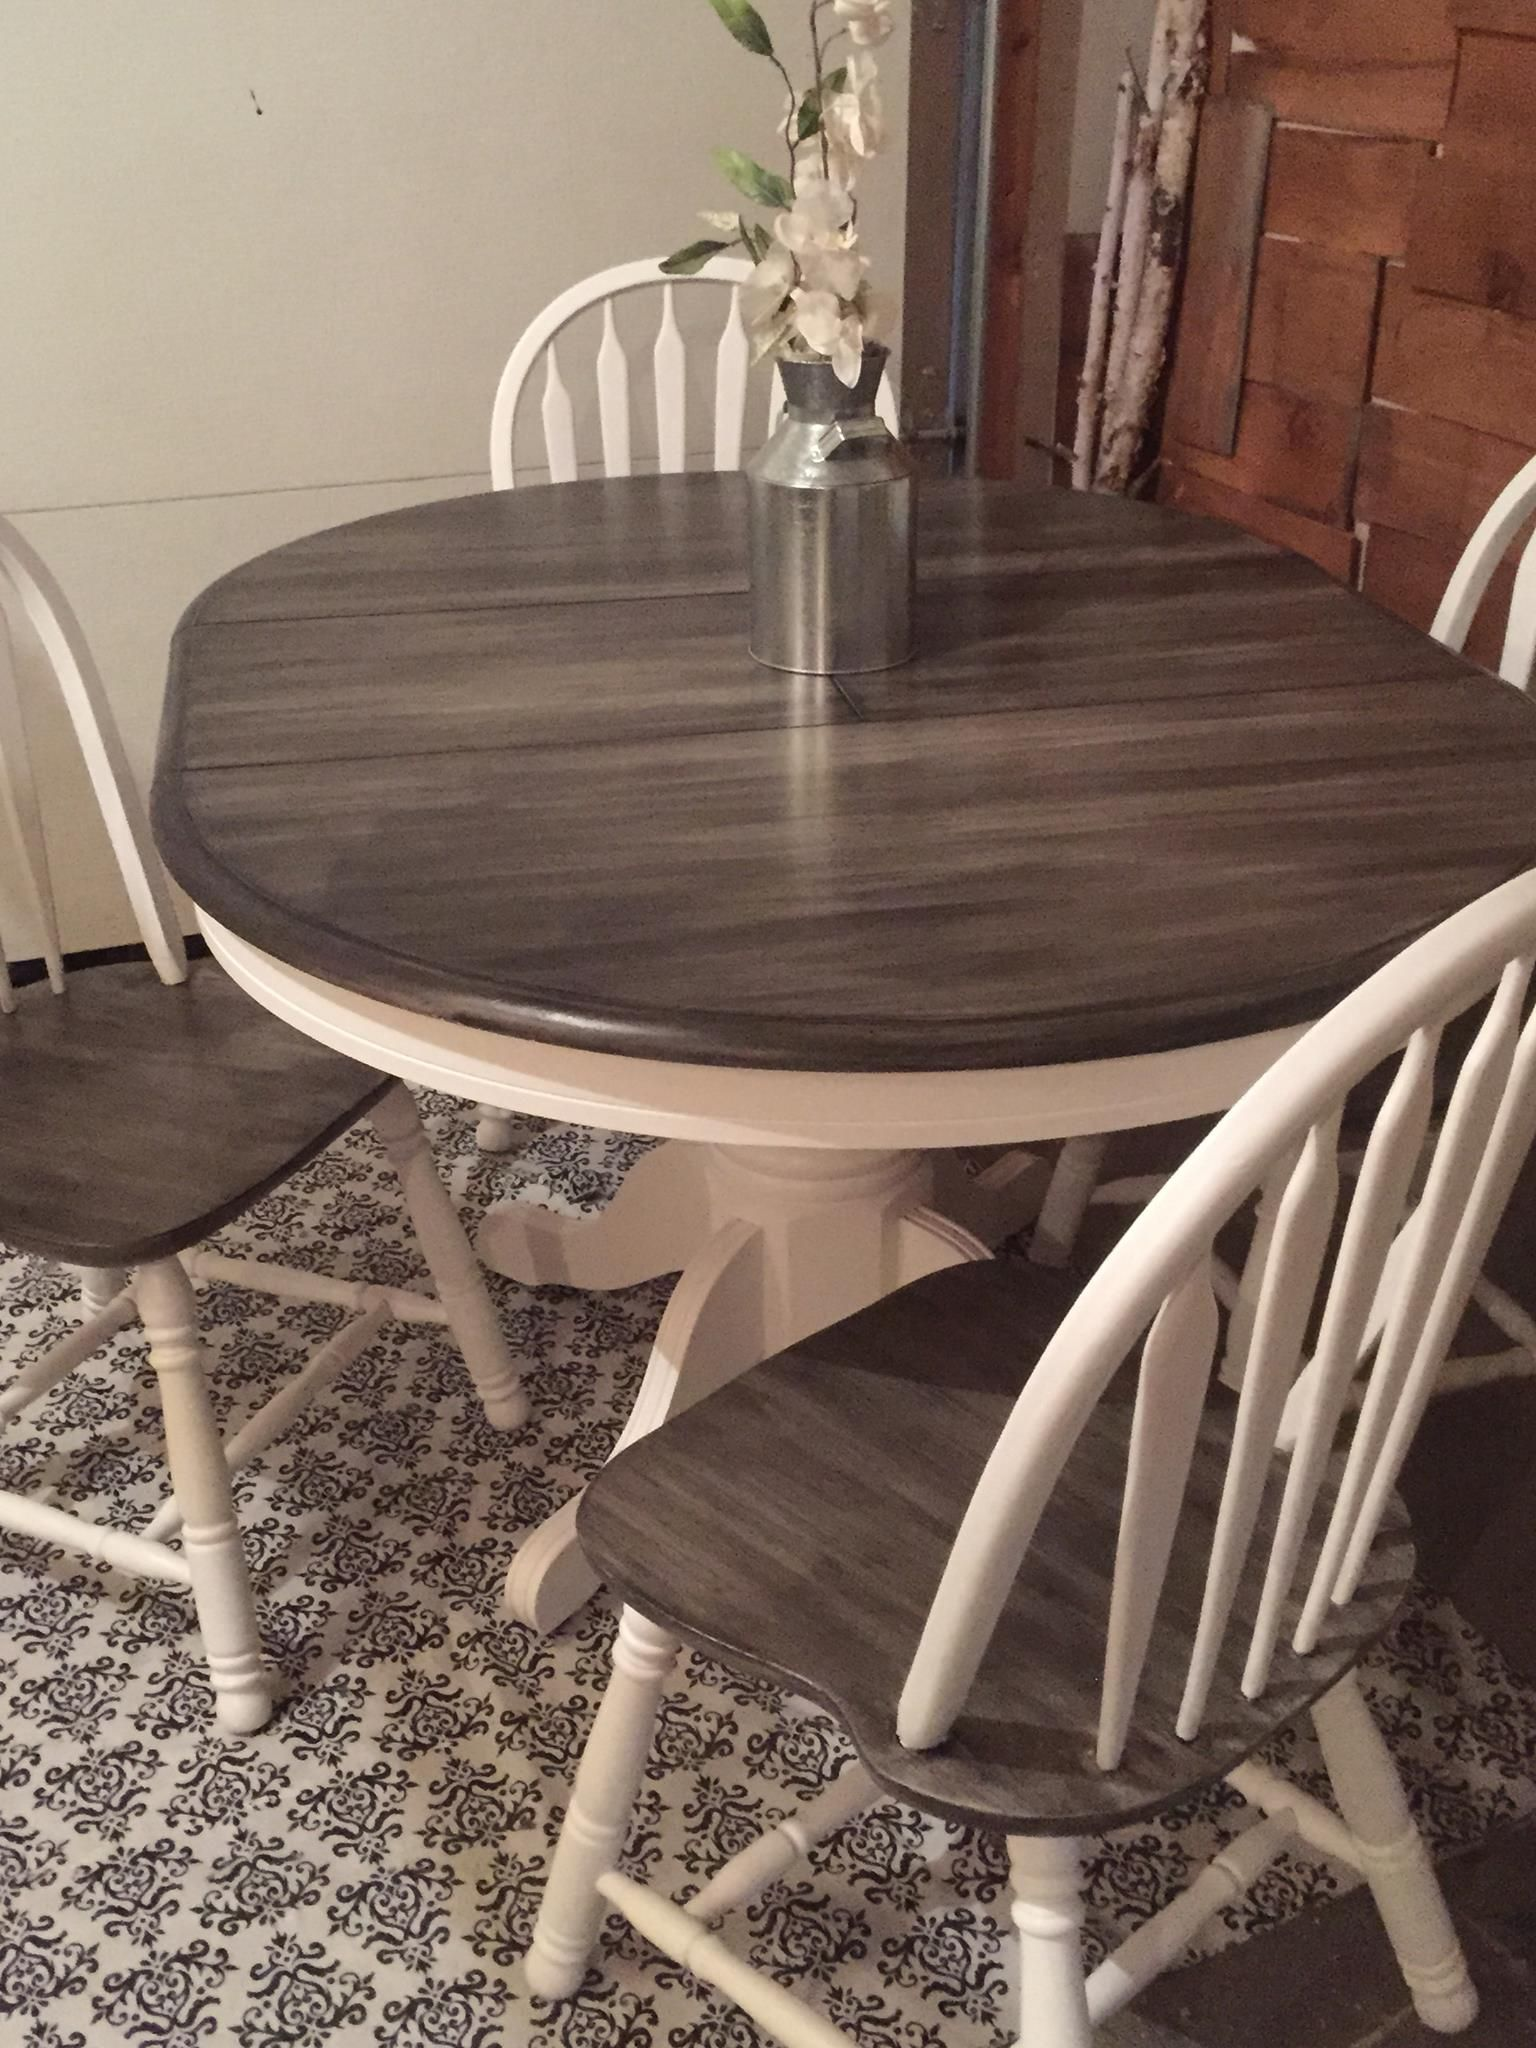 From simple Oak Table and Chairs to a Decorative Rustic Dining